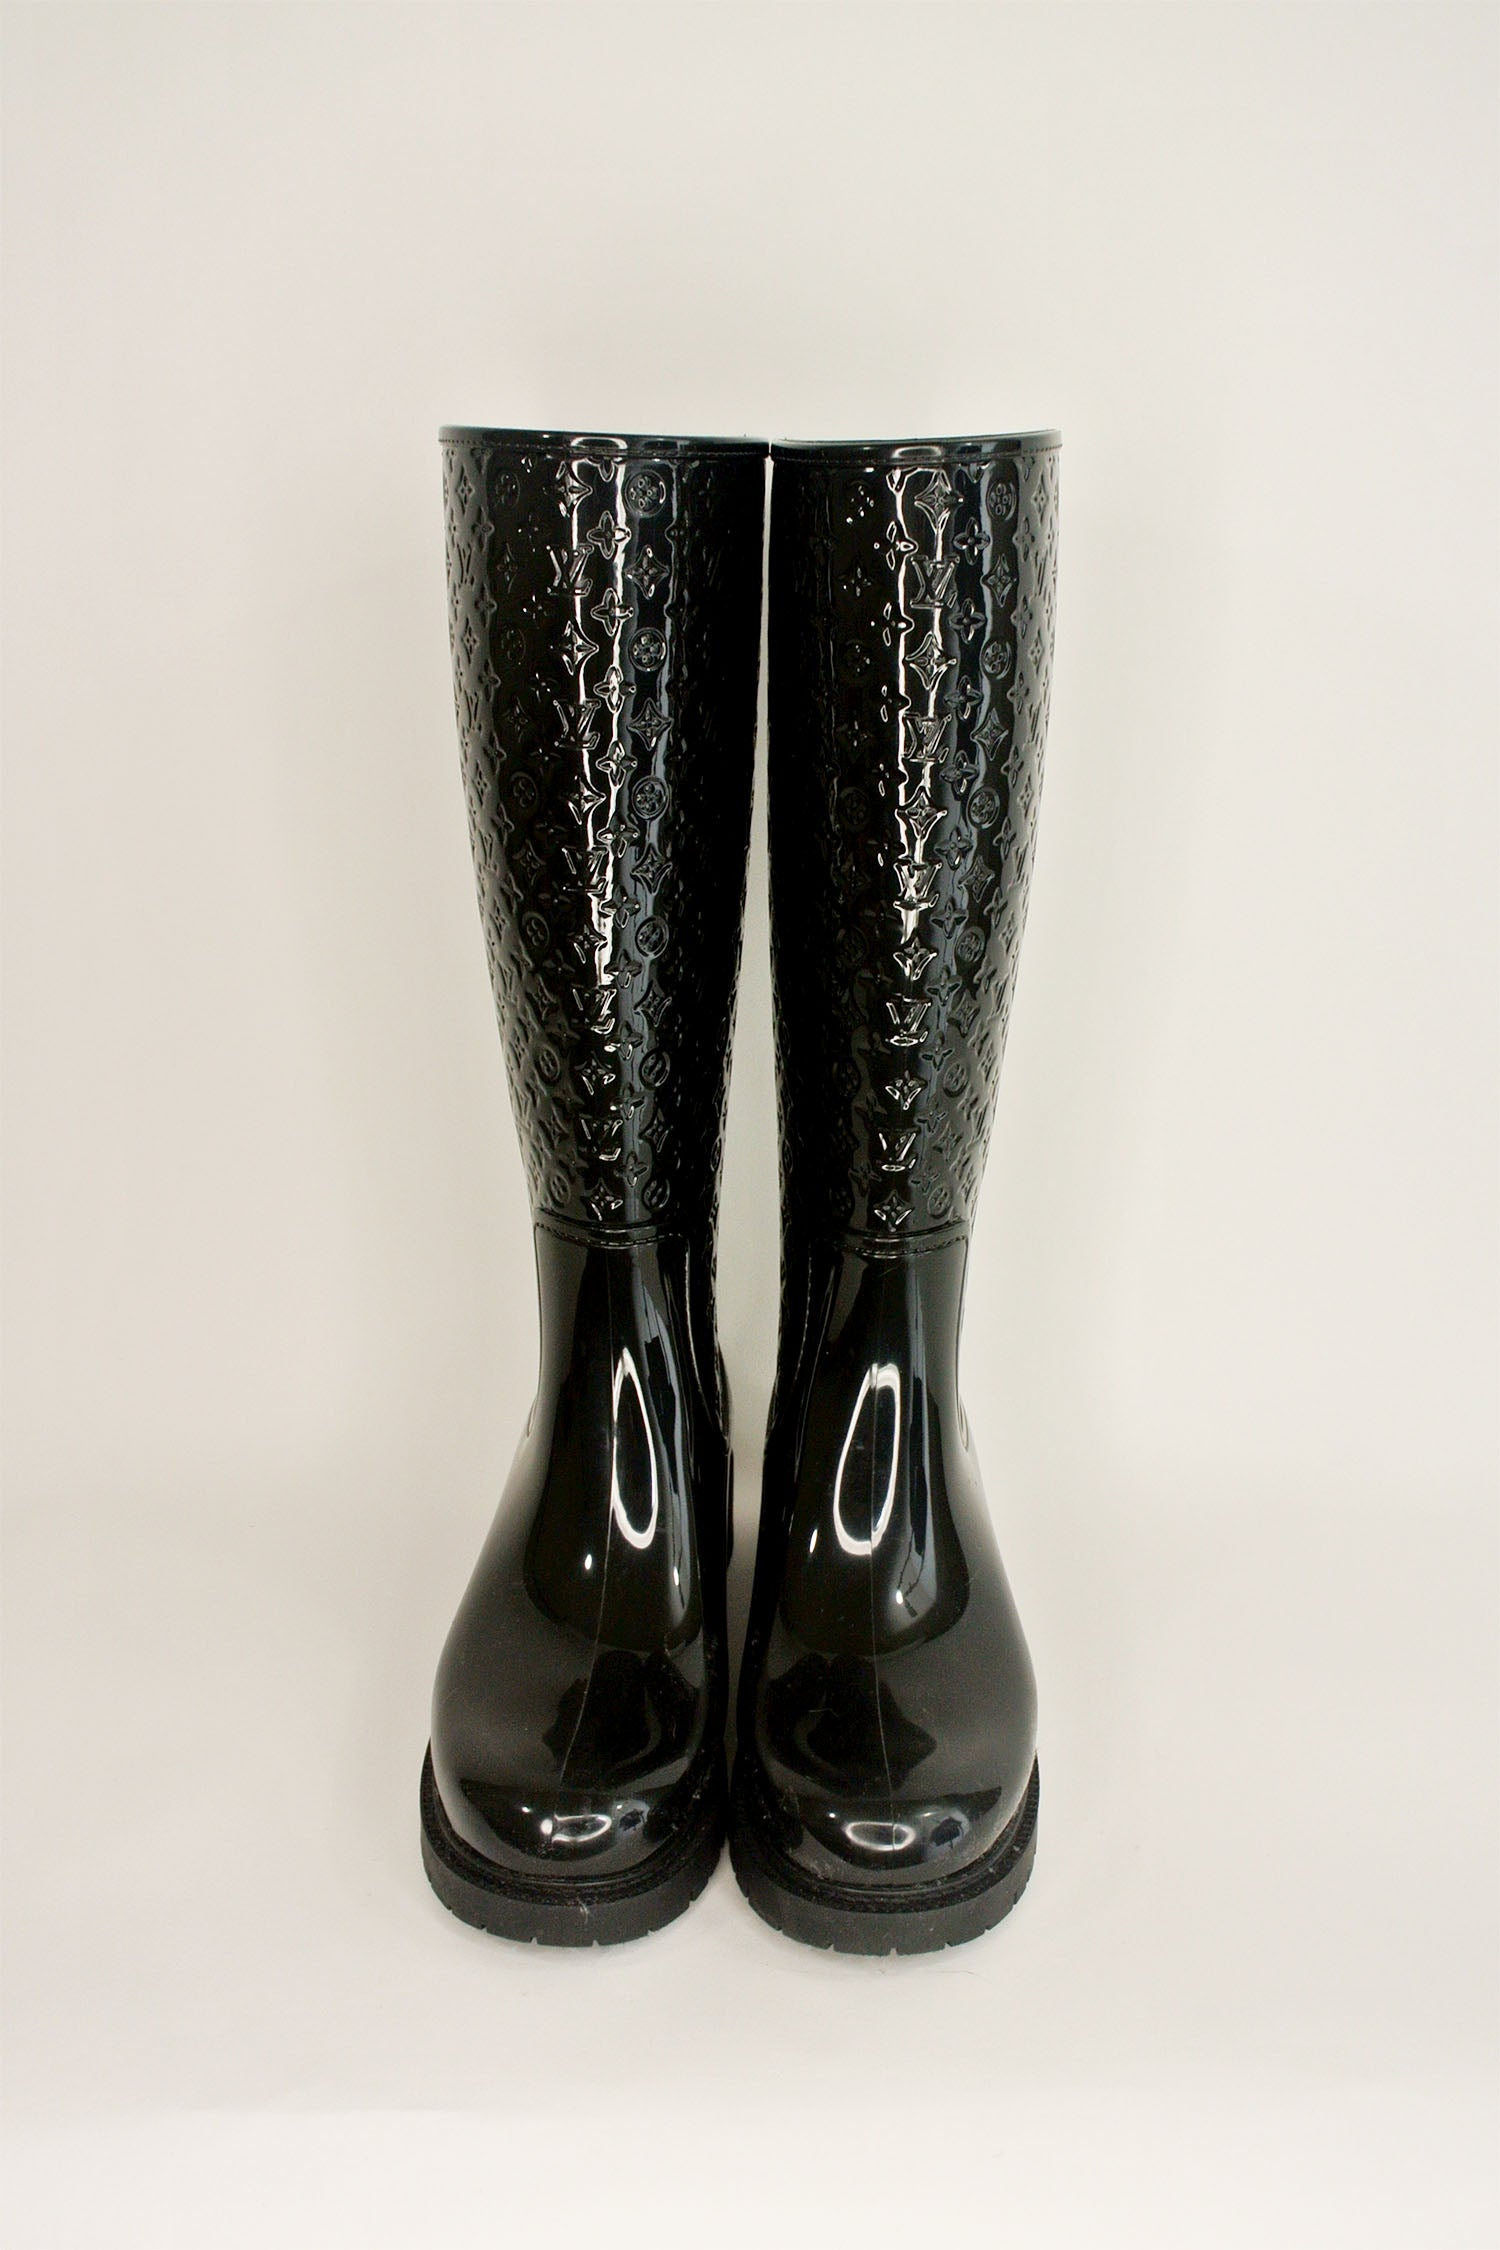 Louis Vuitton Monogram Black Rain Boots Sz 38